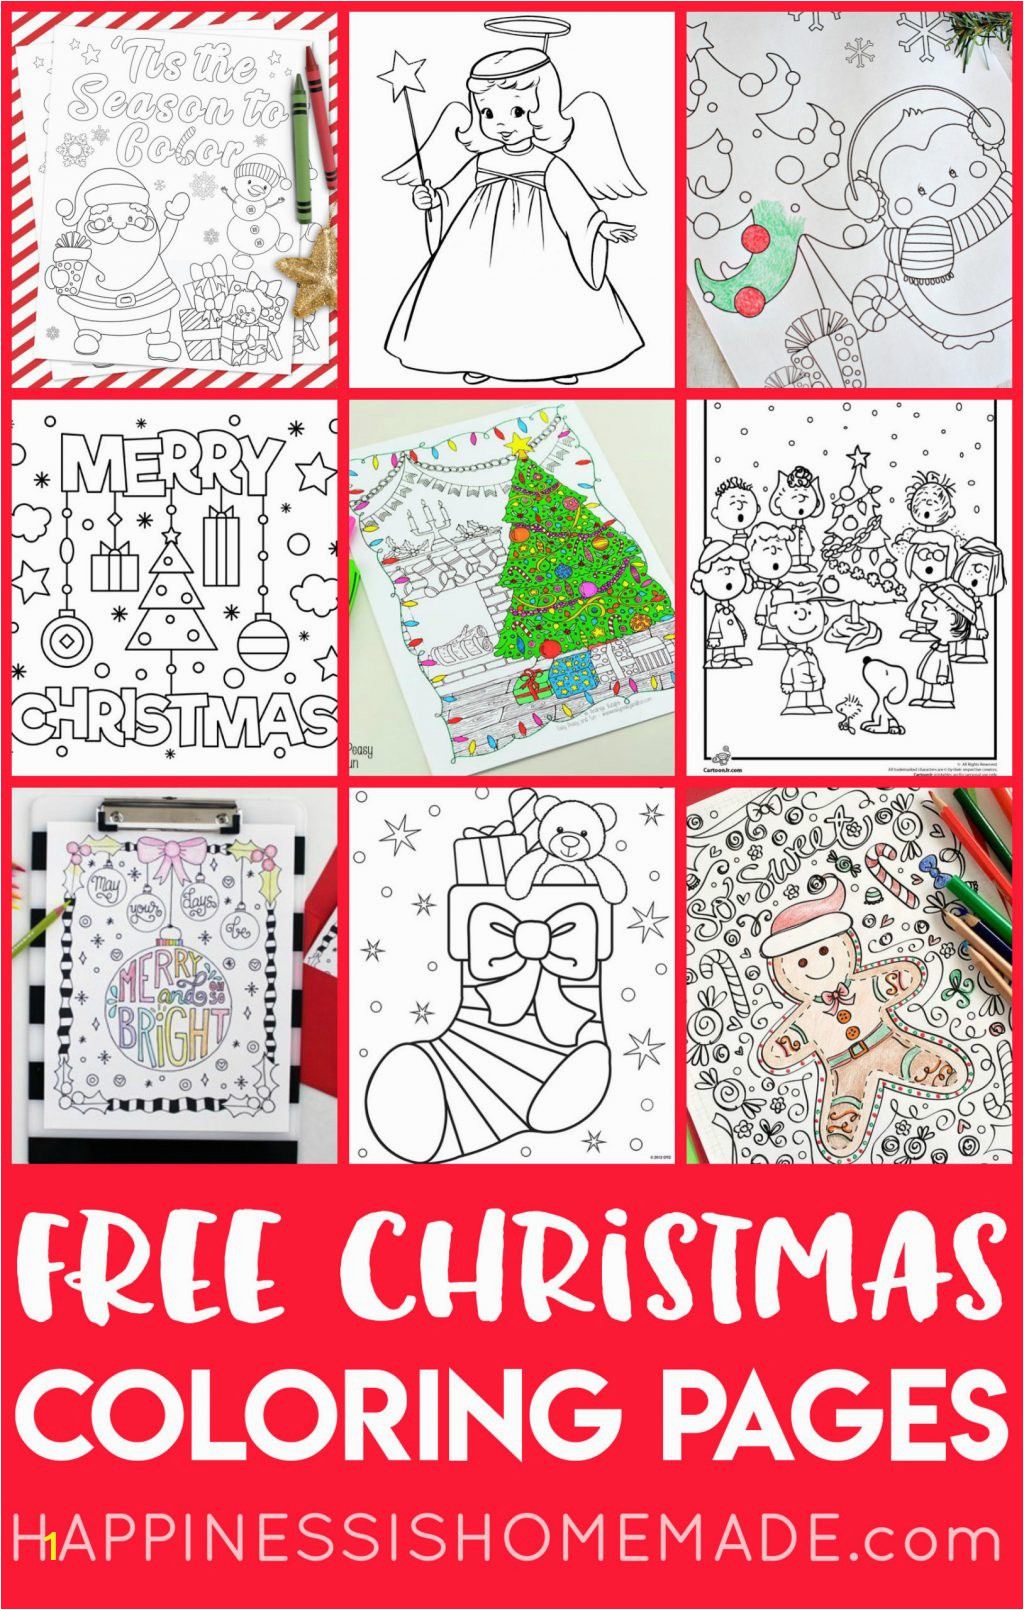 printable christmas cards to color fun coloring pages grinch page math animal mandala princess baby quiver simpsons large print books best fantasy sleeping beauty book hockey woody 1024x1610